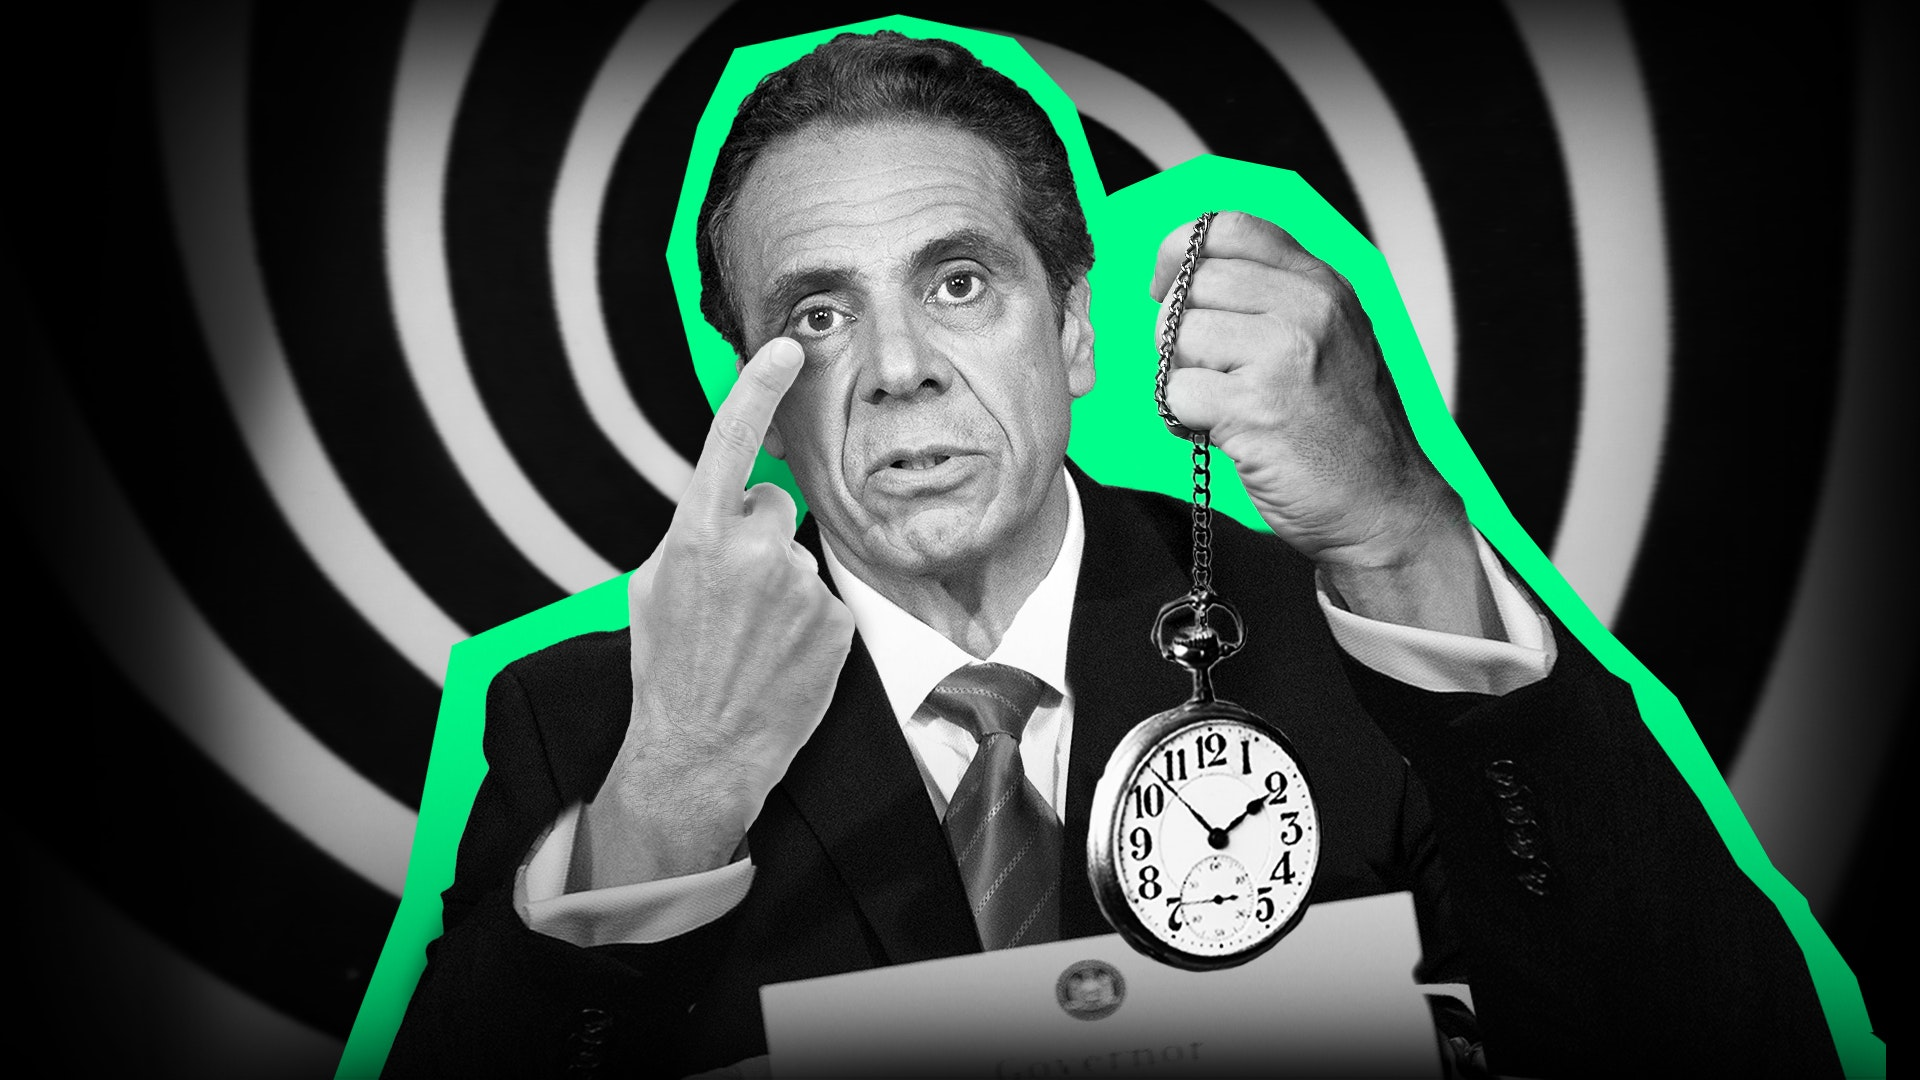 Ep. 713 - Cuomo's Close-Up Magic